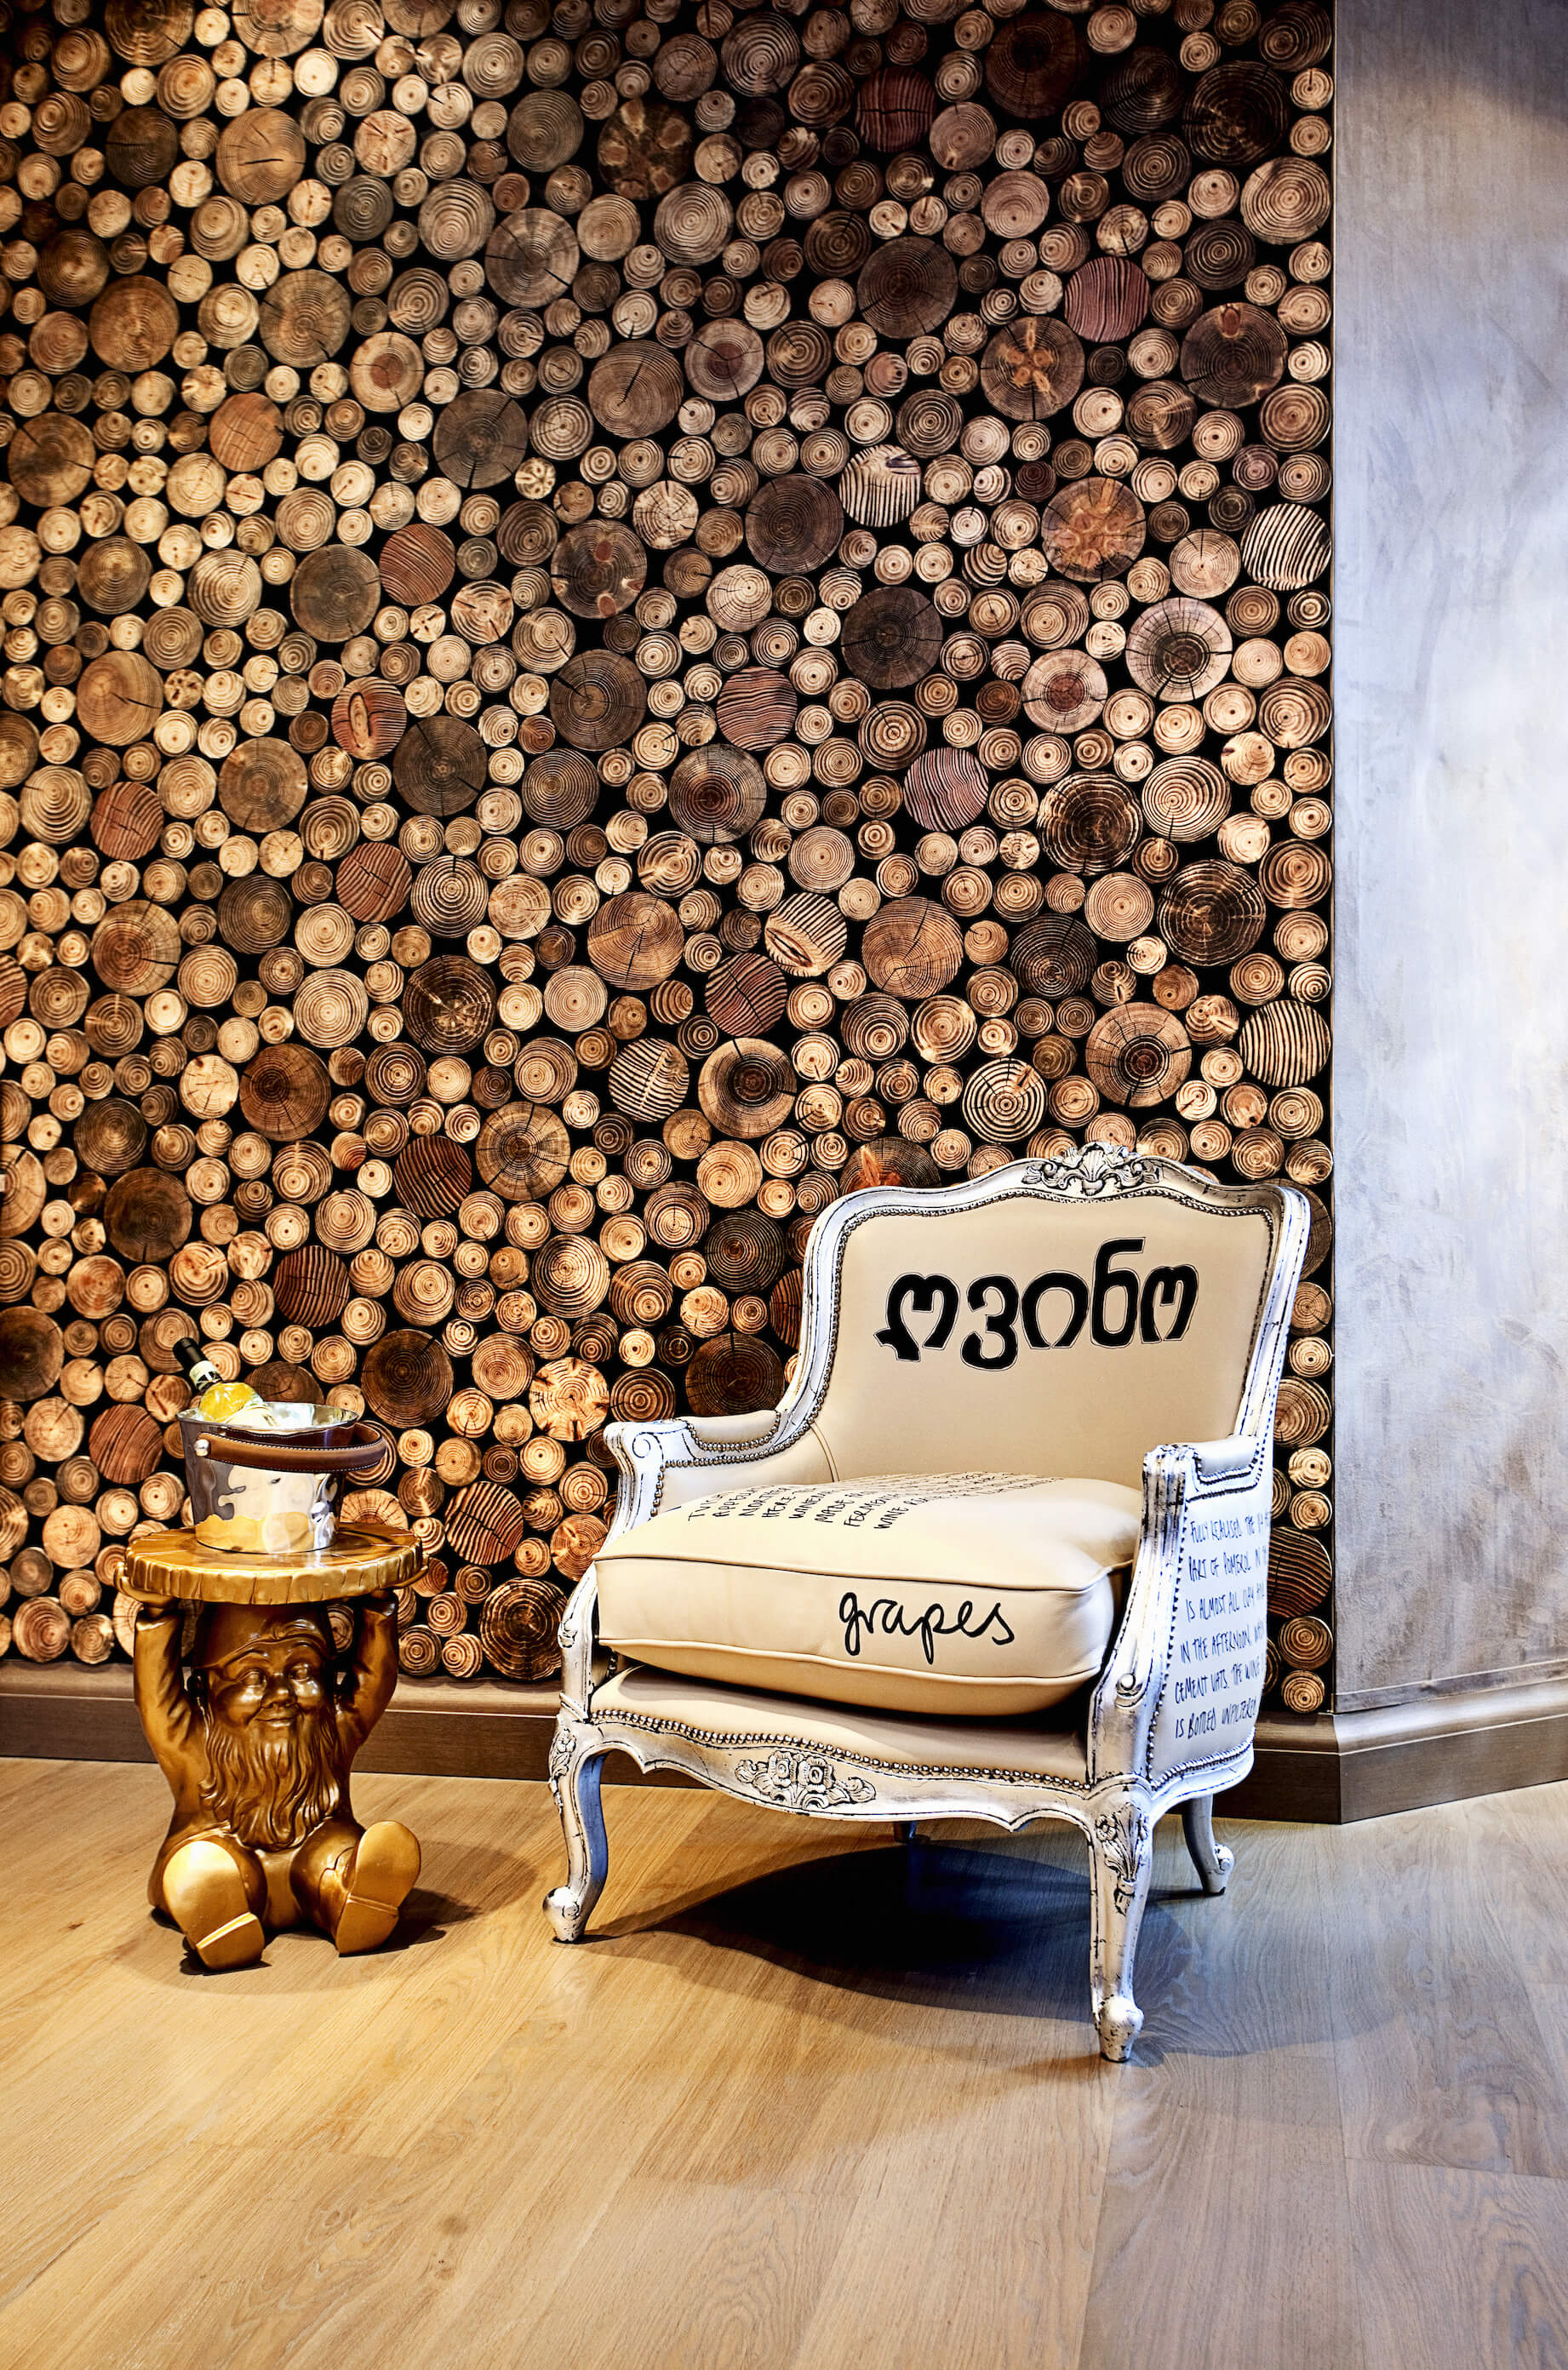 This transitional room contains a unique wood cross-section wall, standing in contrast with an ornate camel back chair painted with silver and text. A small kitschy gnome table coated in gold stands beside.